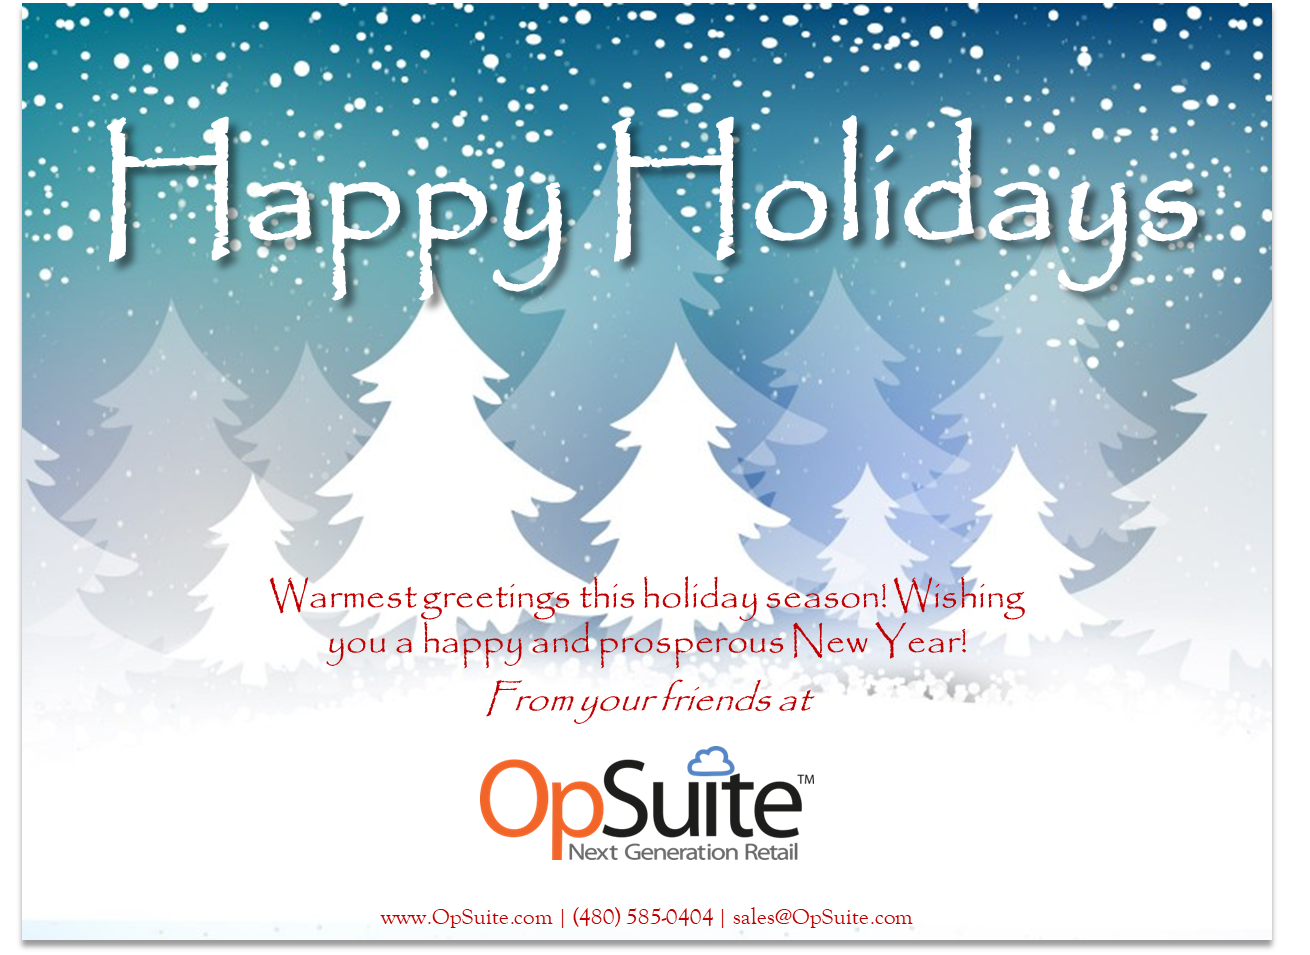 Seasons Greetings Happy Holidays From Opsuite Opsuite News